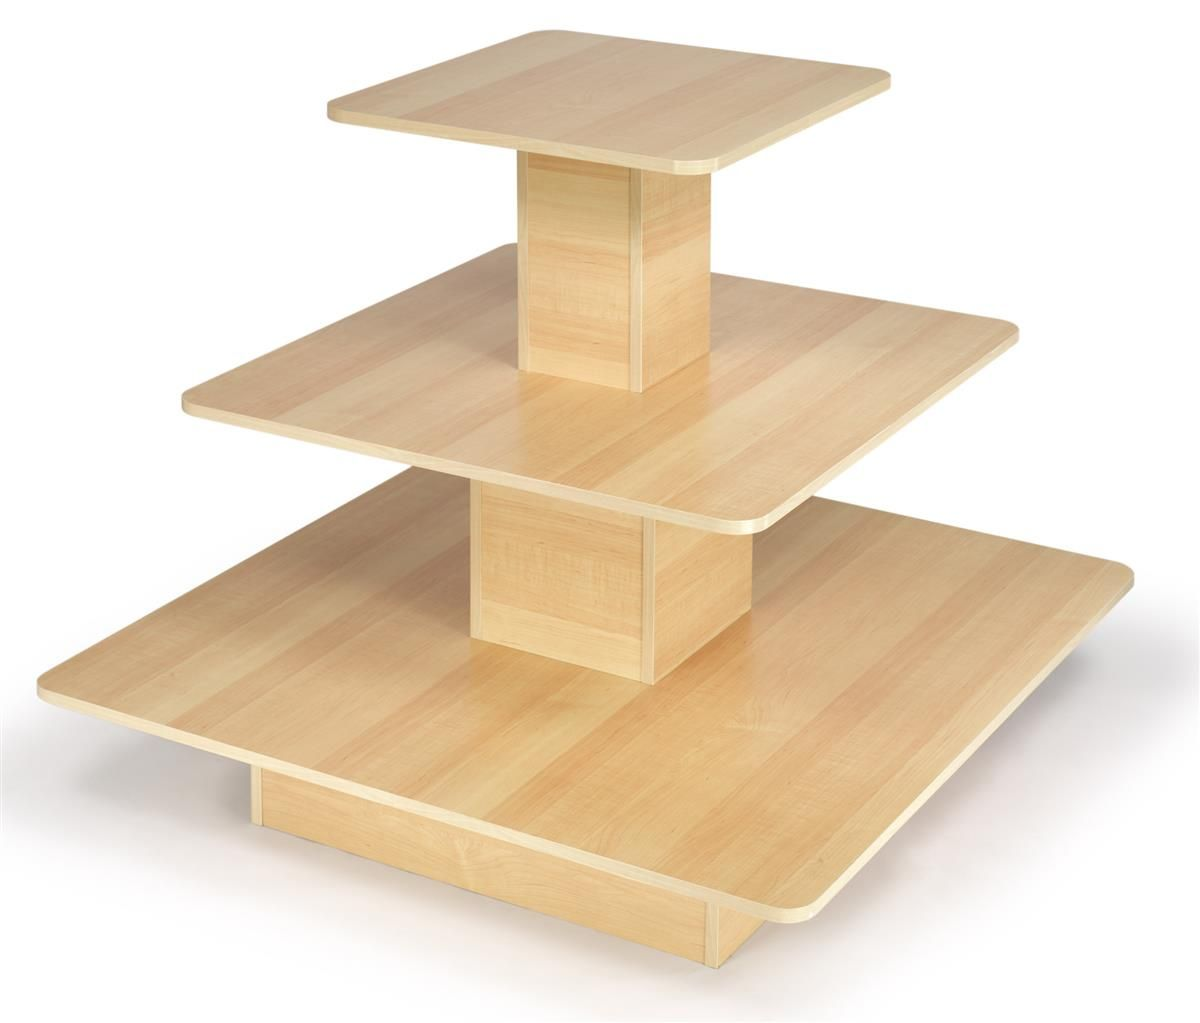 48 X 48 Tiered Display Table W 3 Shelves Square Maple Tiered Table Display Display Merchandising Displays